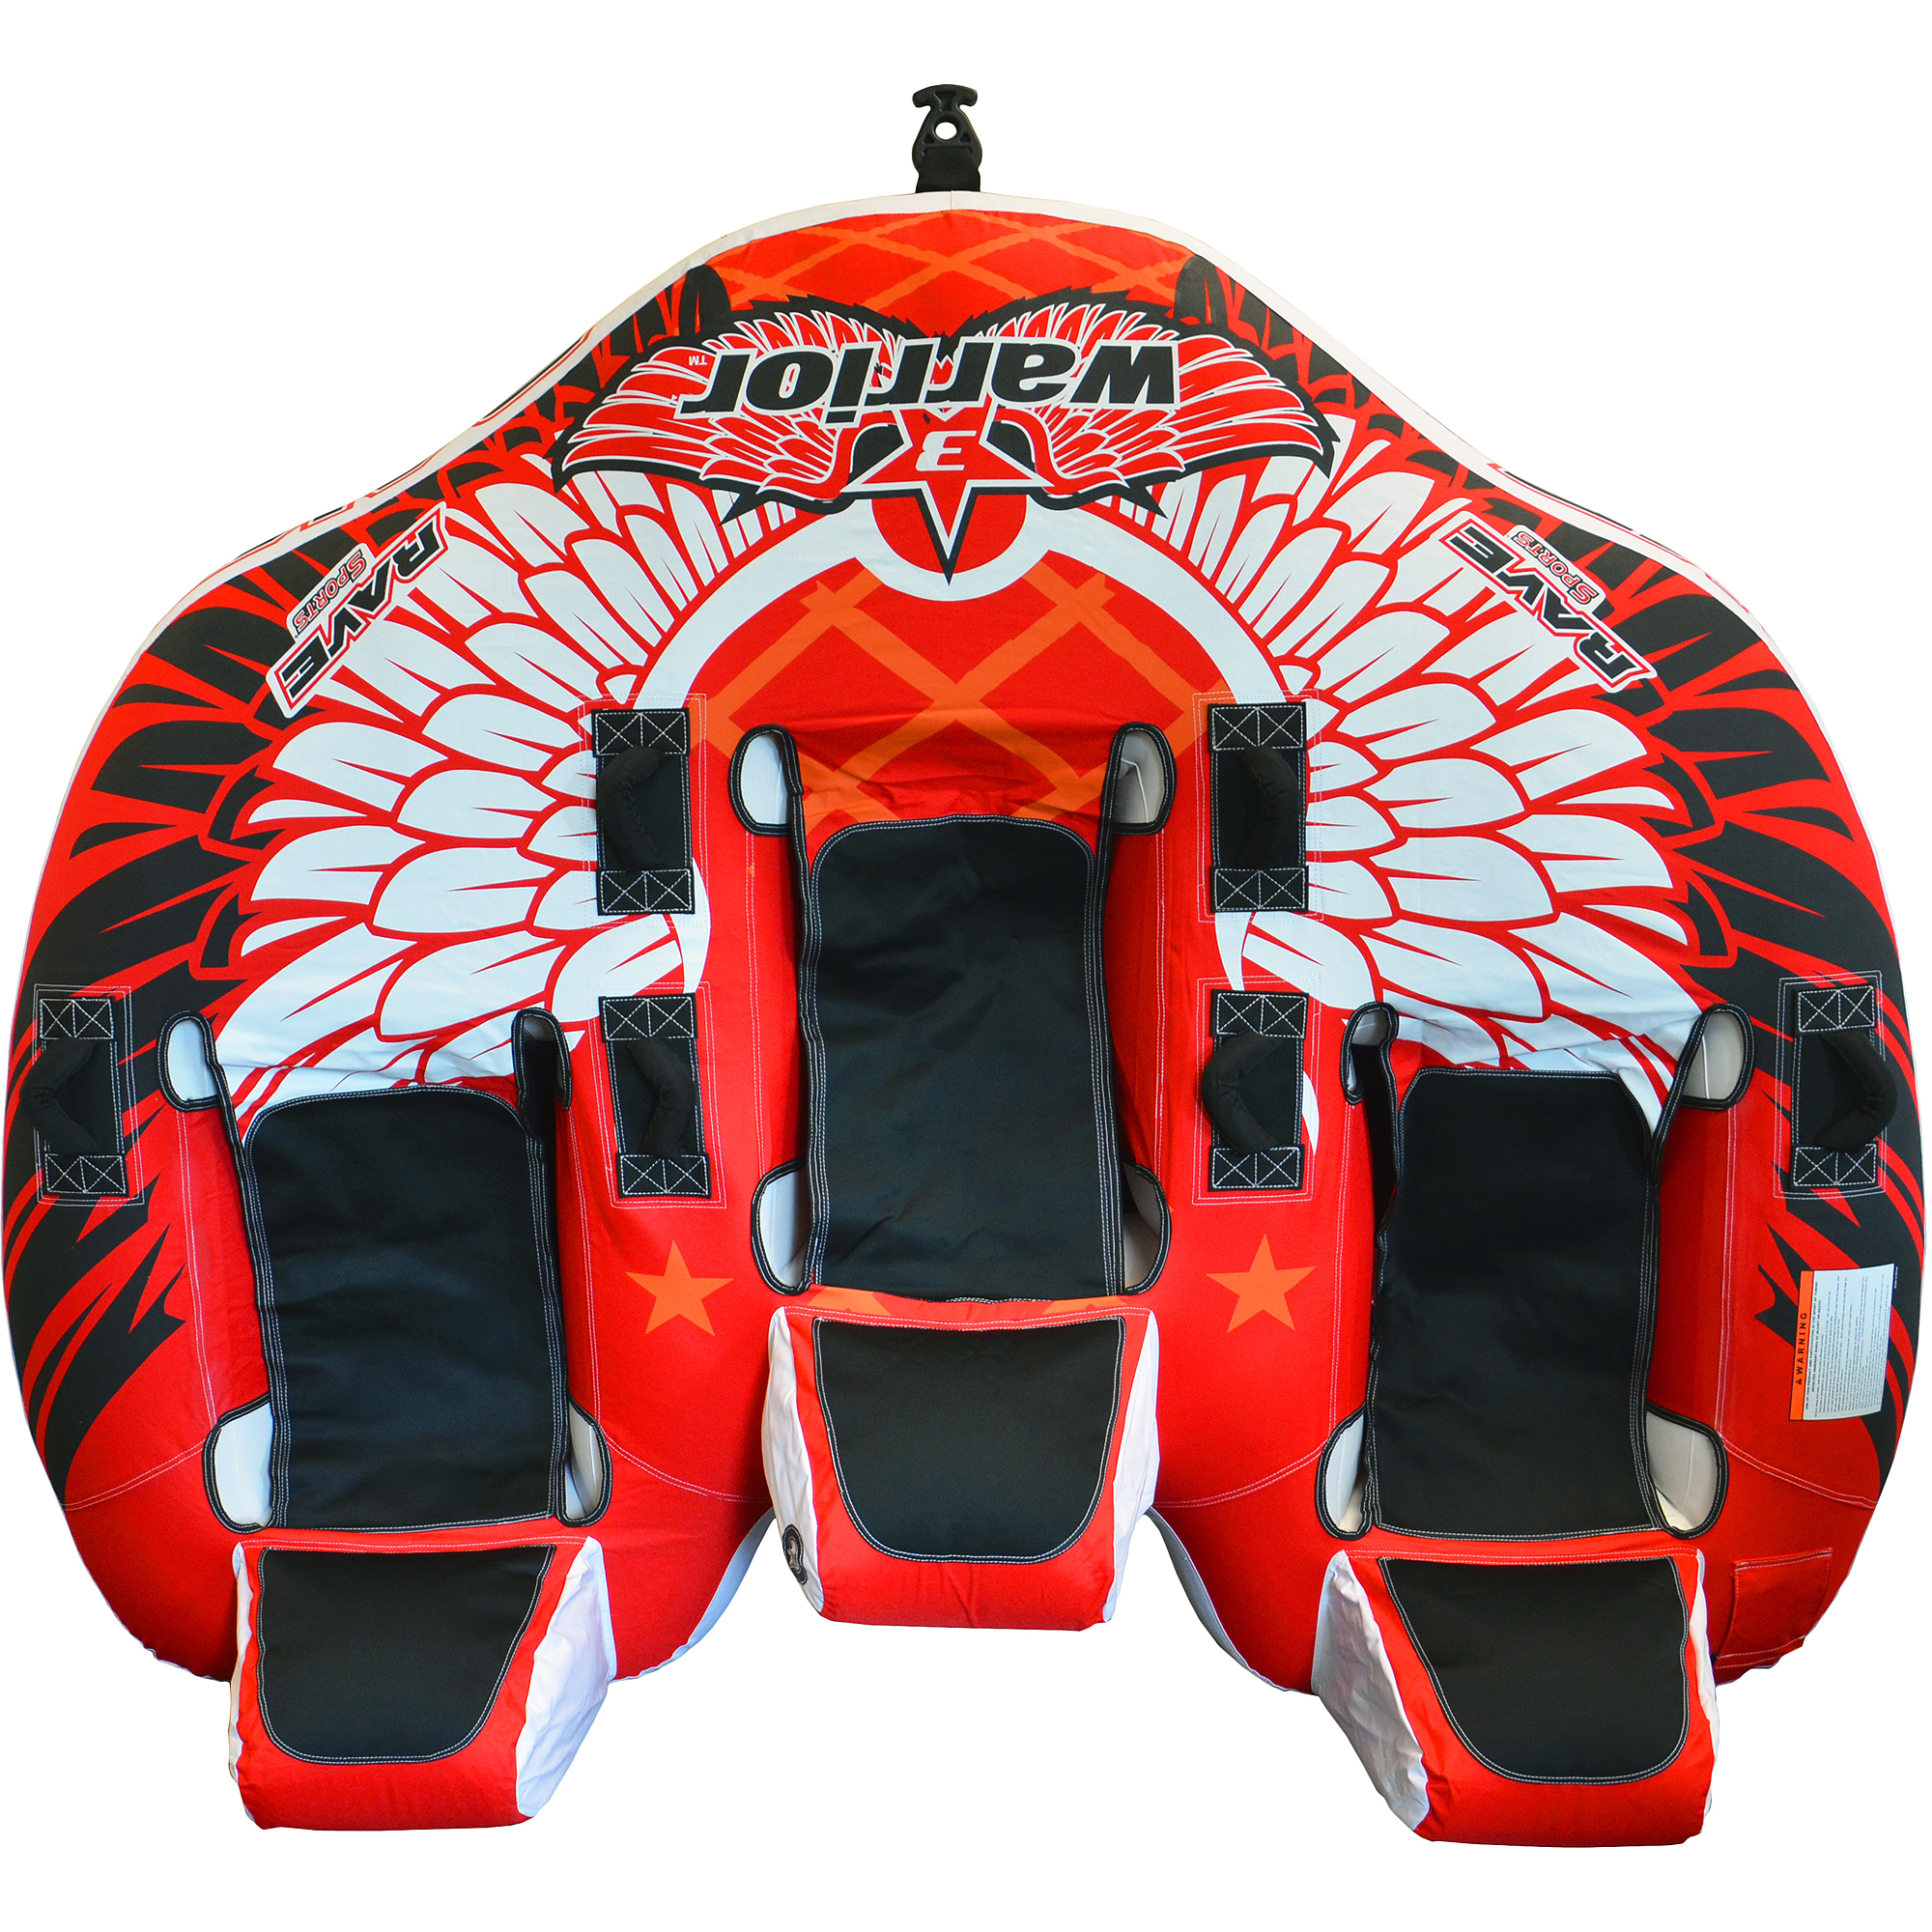 Rave Sports Warrior 3-Rider Sit-On-Top Design Tube